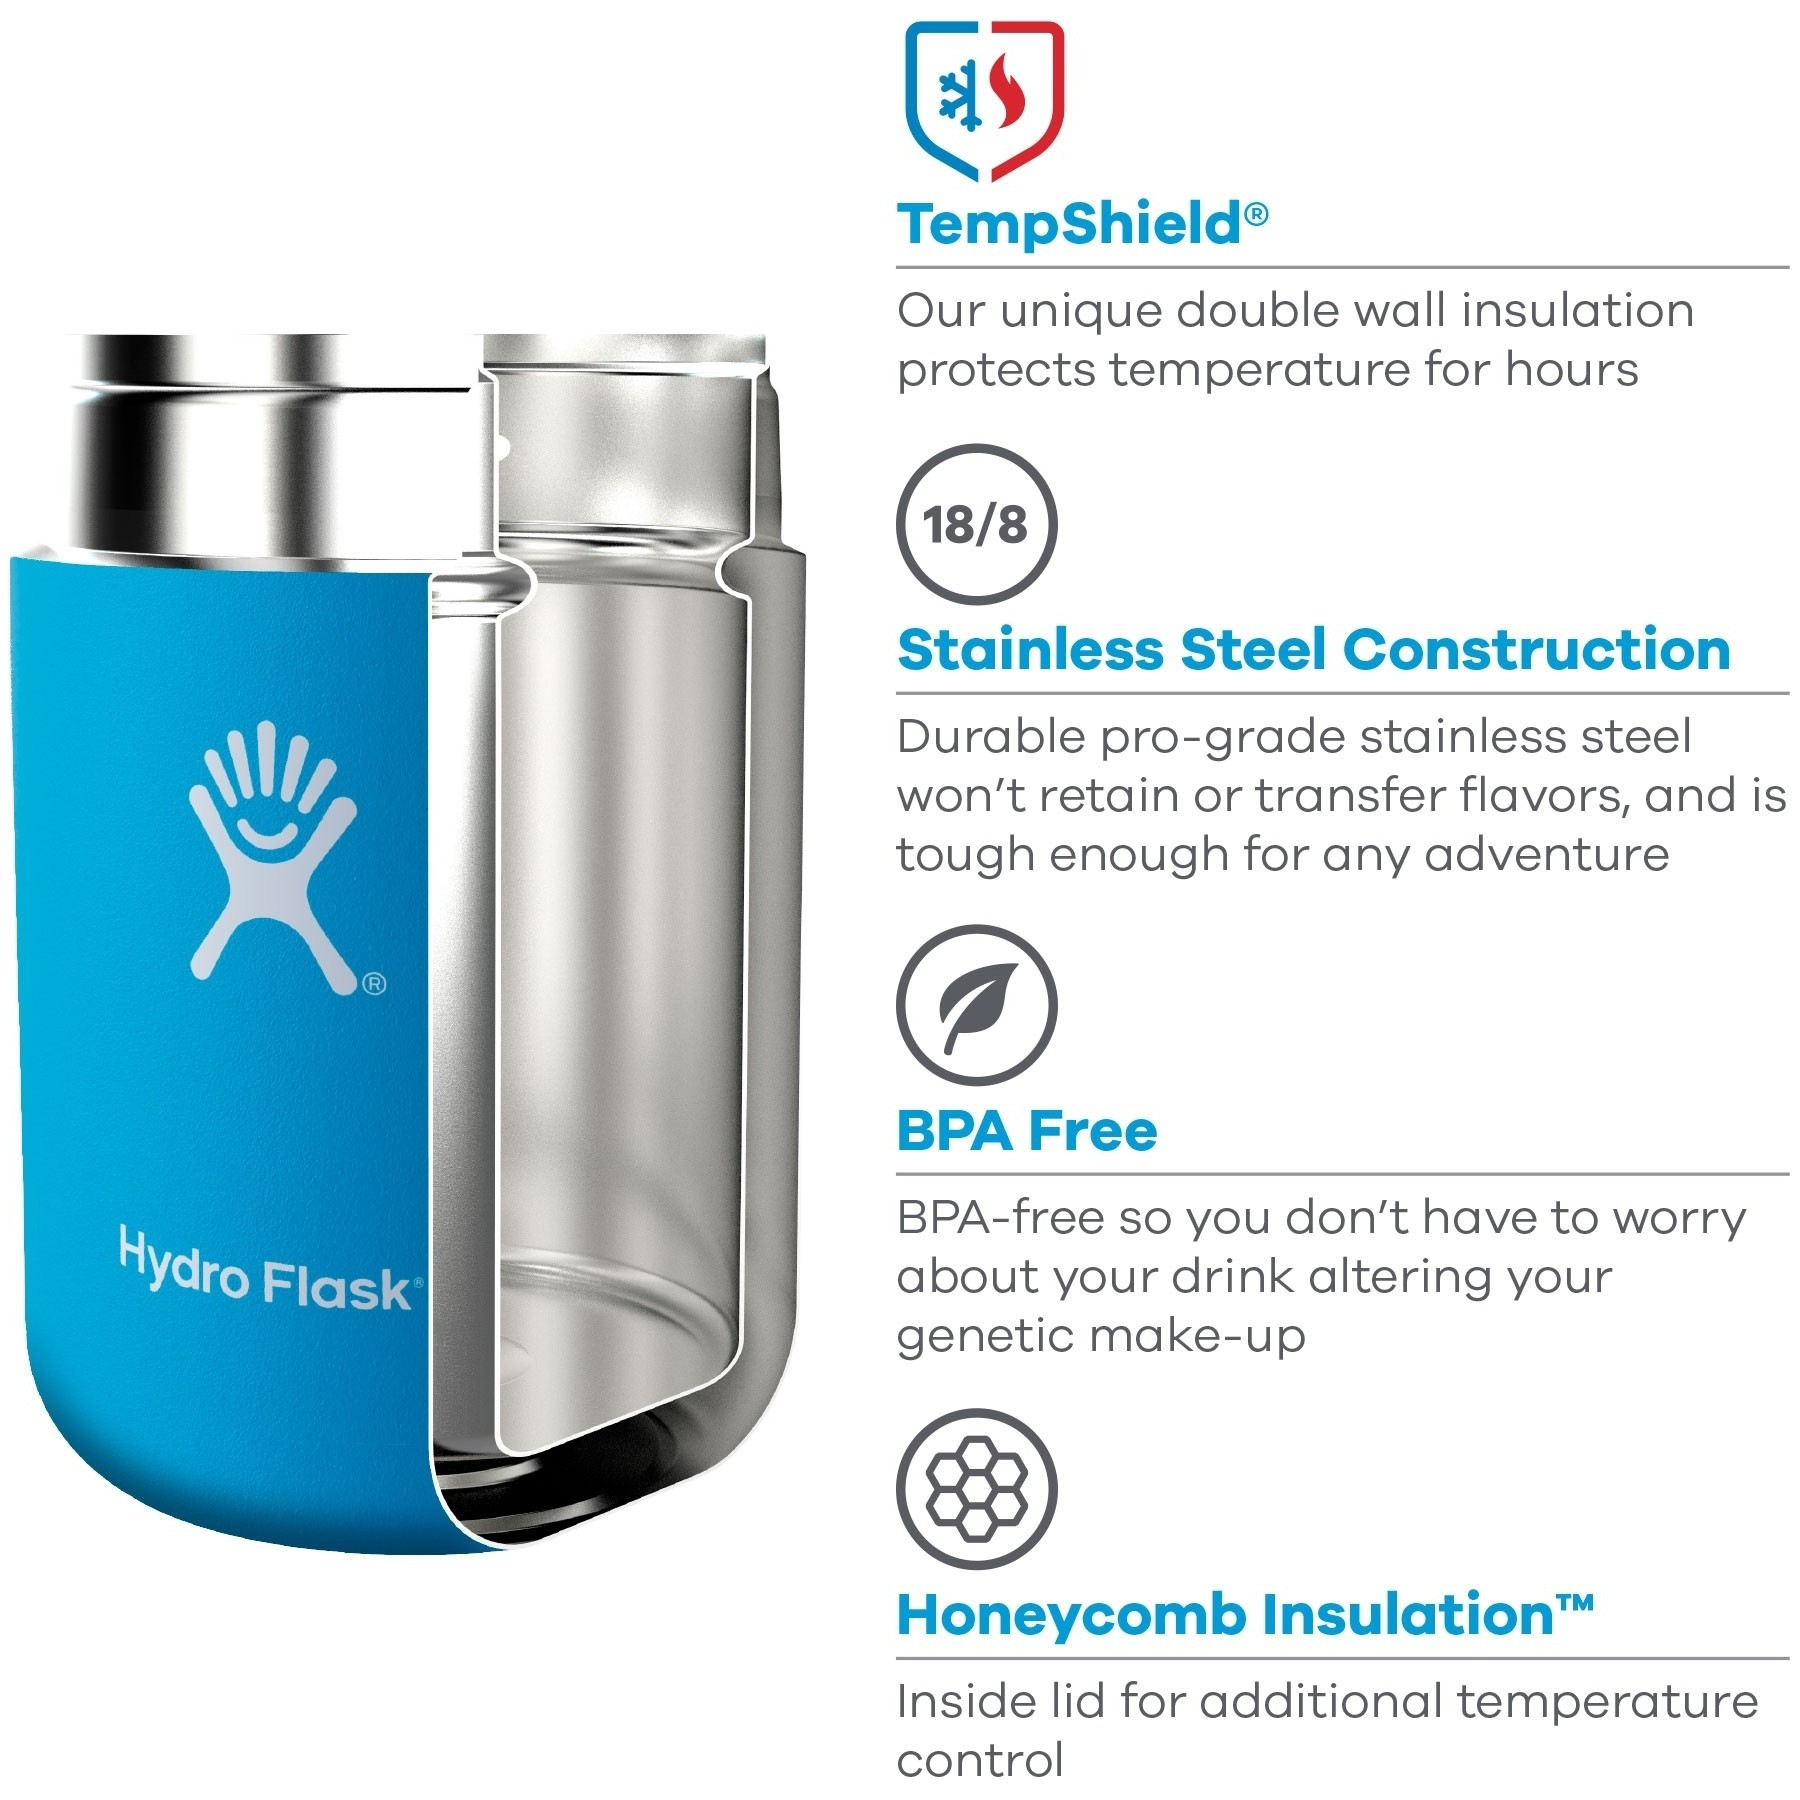 Hydro Flask 18oz Insulated Food Flask - features